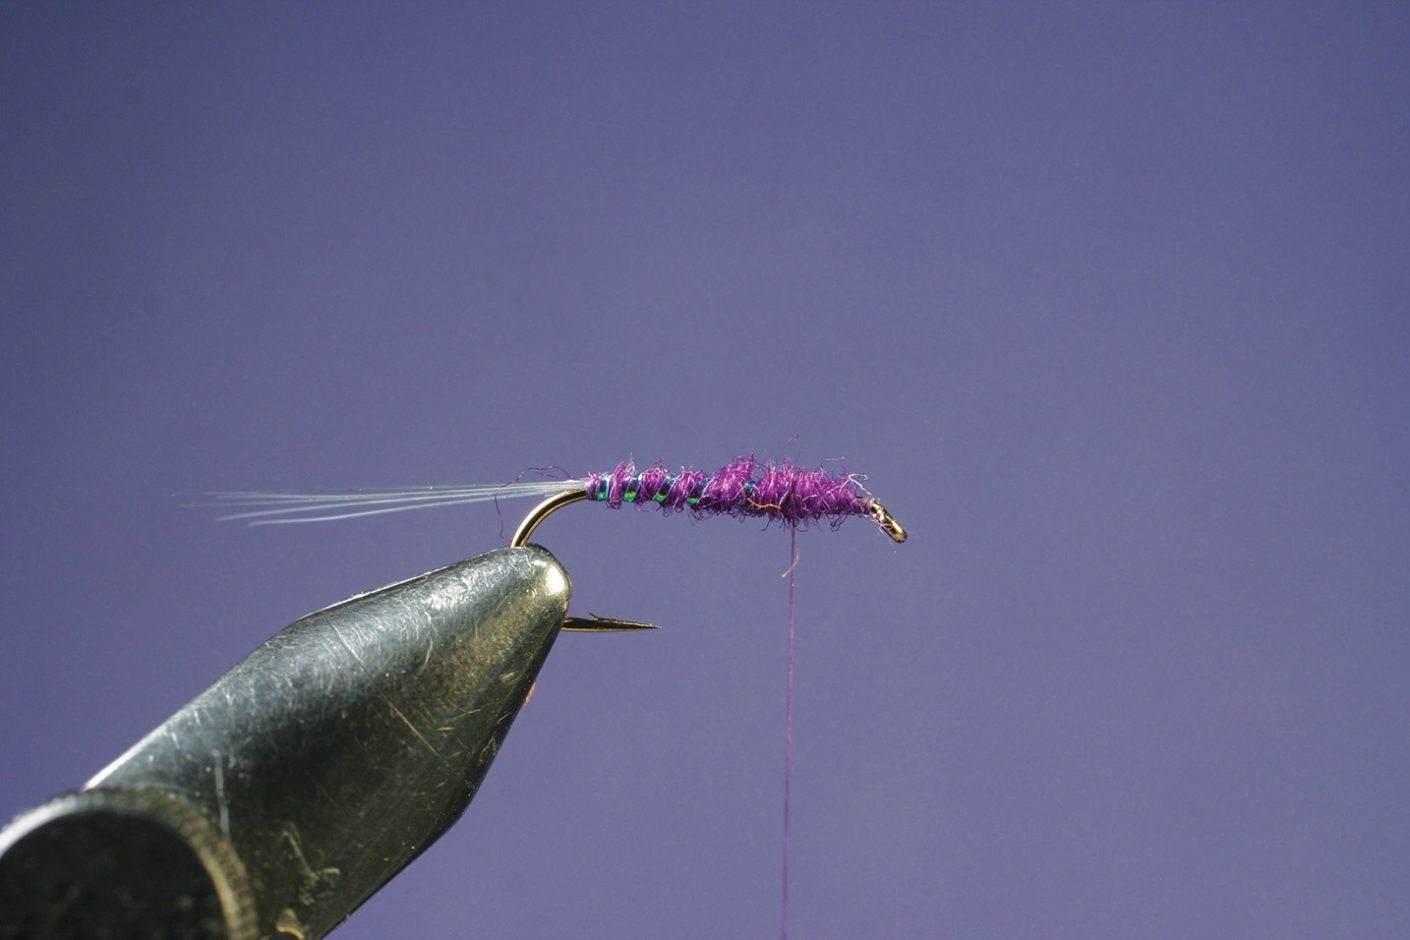 Dub thorax on Purple PFD Parawulff fly